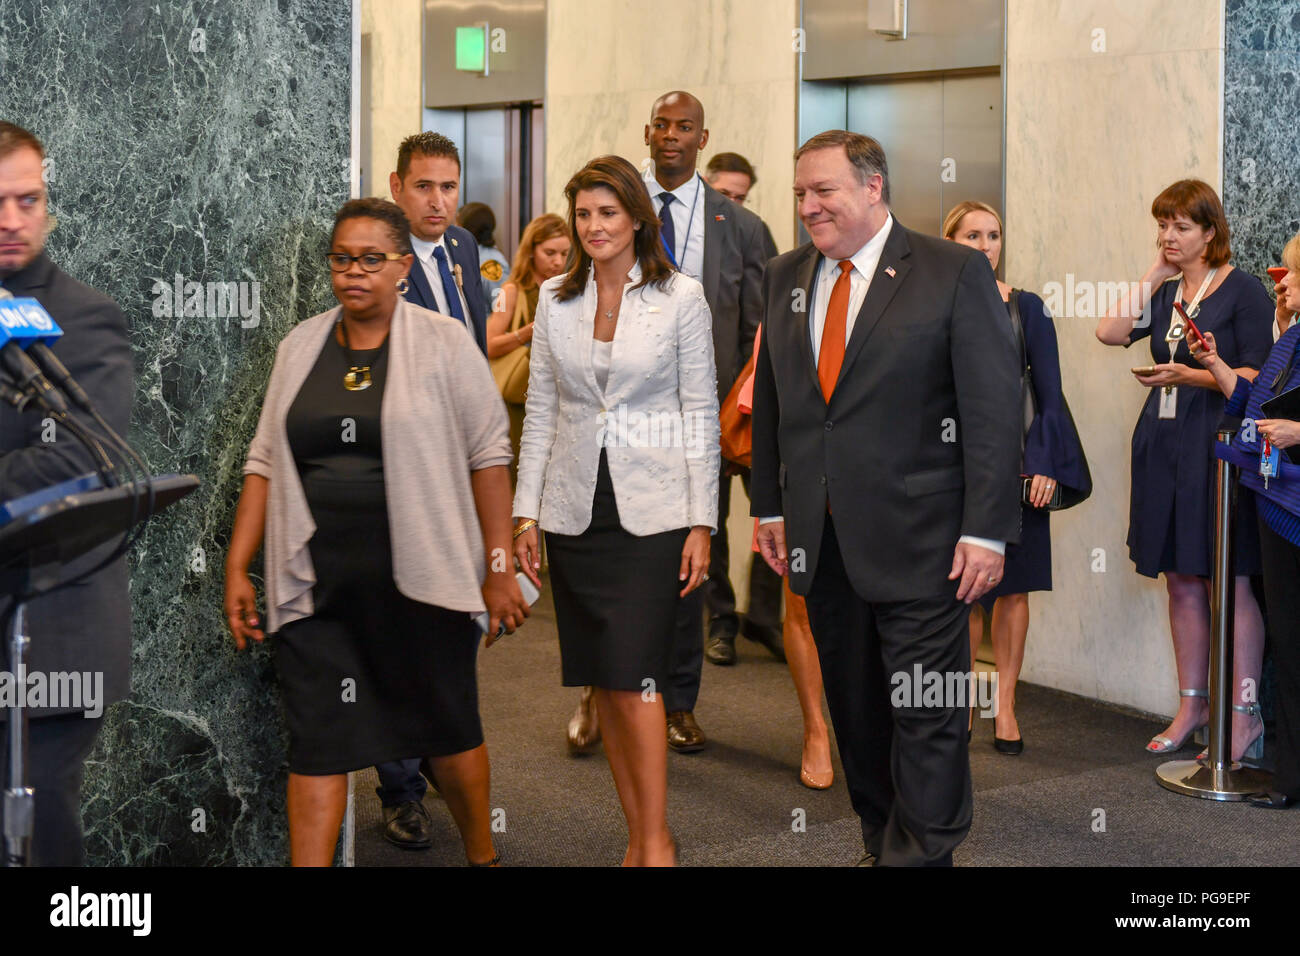 U.S. Secretary of State Michael R. Pompeo  and U.S. Permanent Representative to the United Nations Nikki Haley prepare to address the press in New York, New York on July 20, 2018. - Stock Image